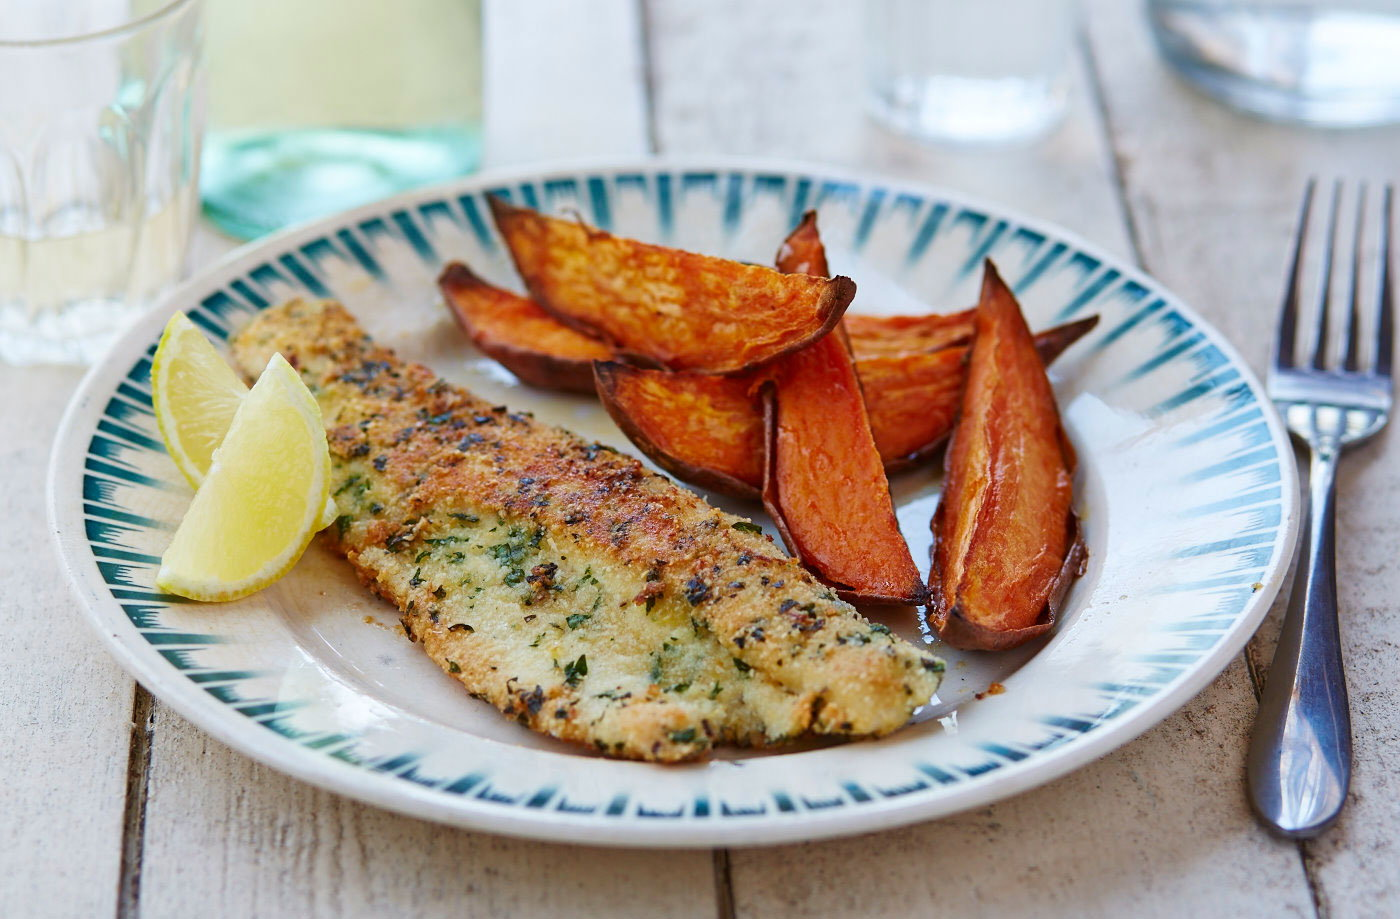 Gluten-free almond crusted fish and sweet potato wedges recipe